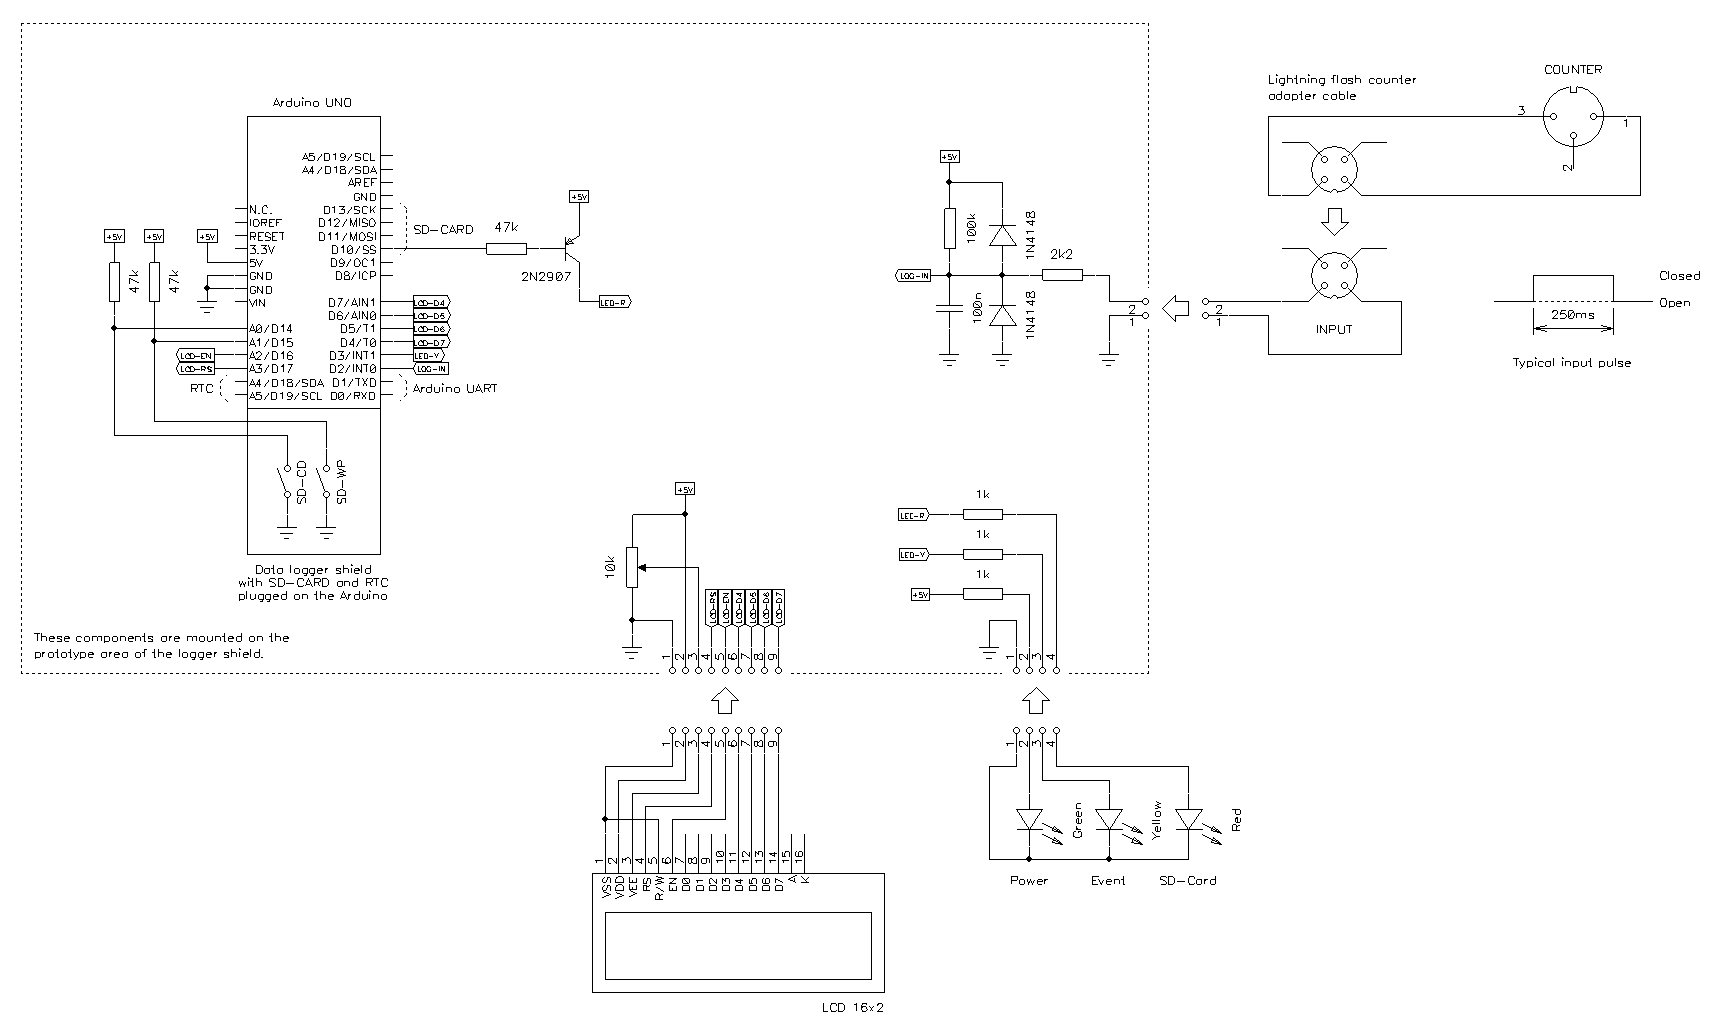 A Lightning Flash Counter Circuit Design Schematic Diagram Of The Logger Click To Enlarge